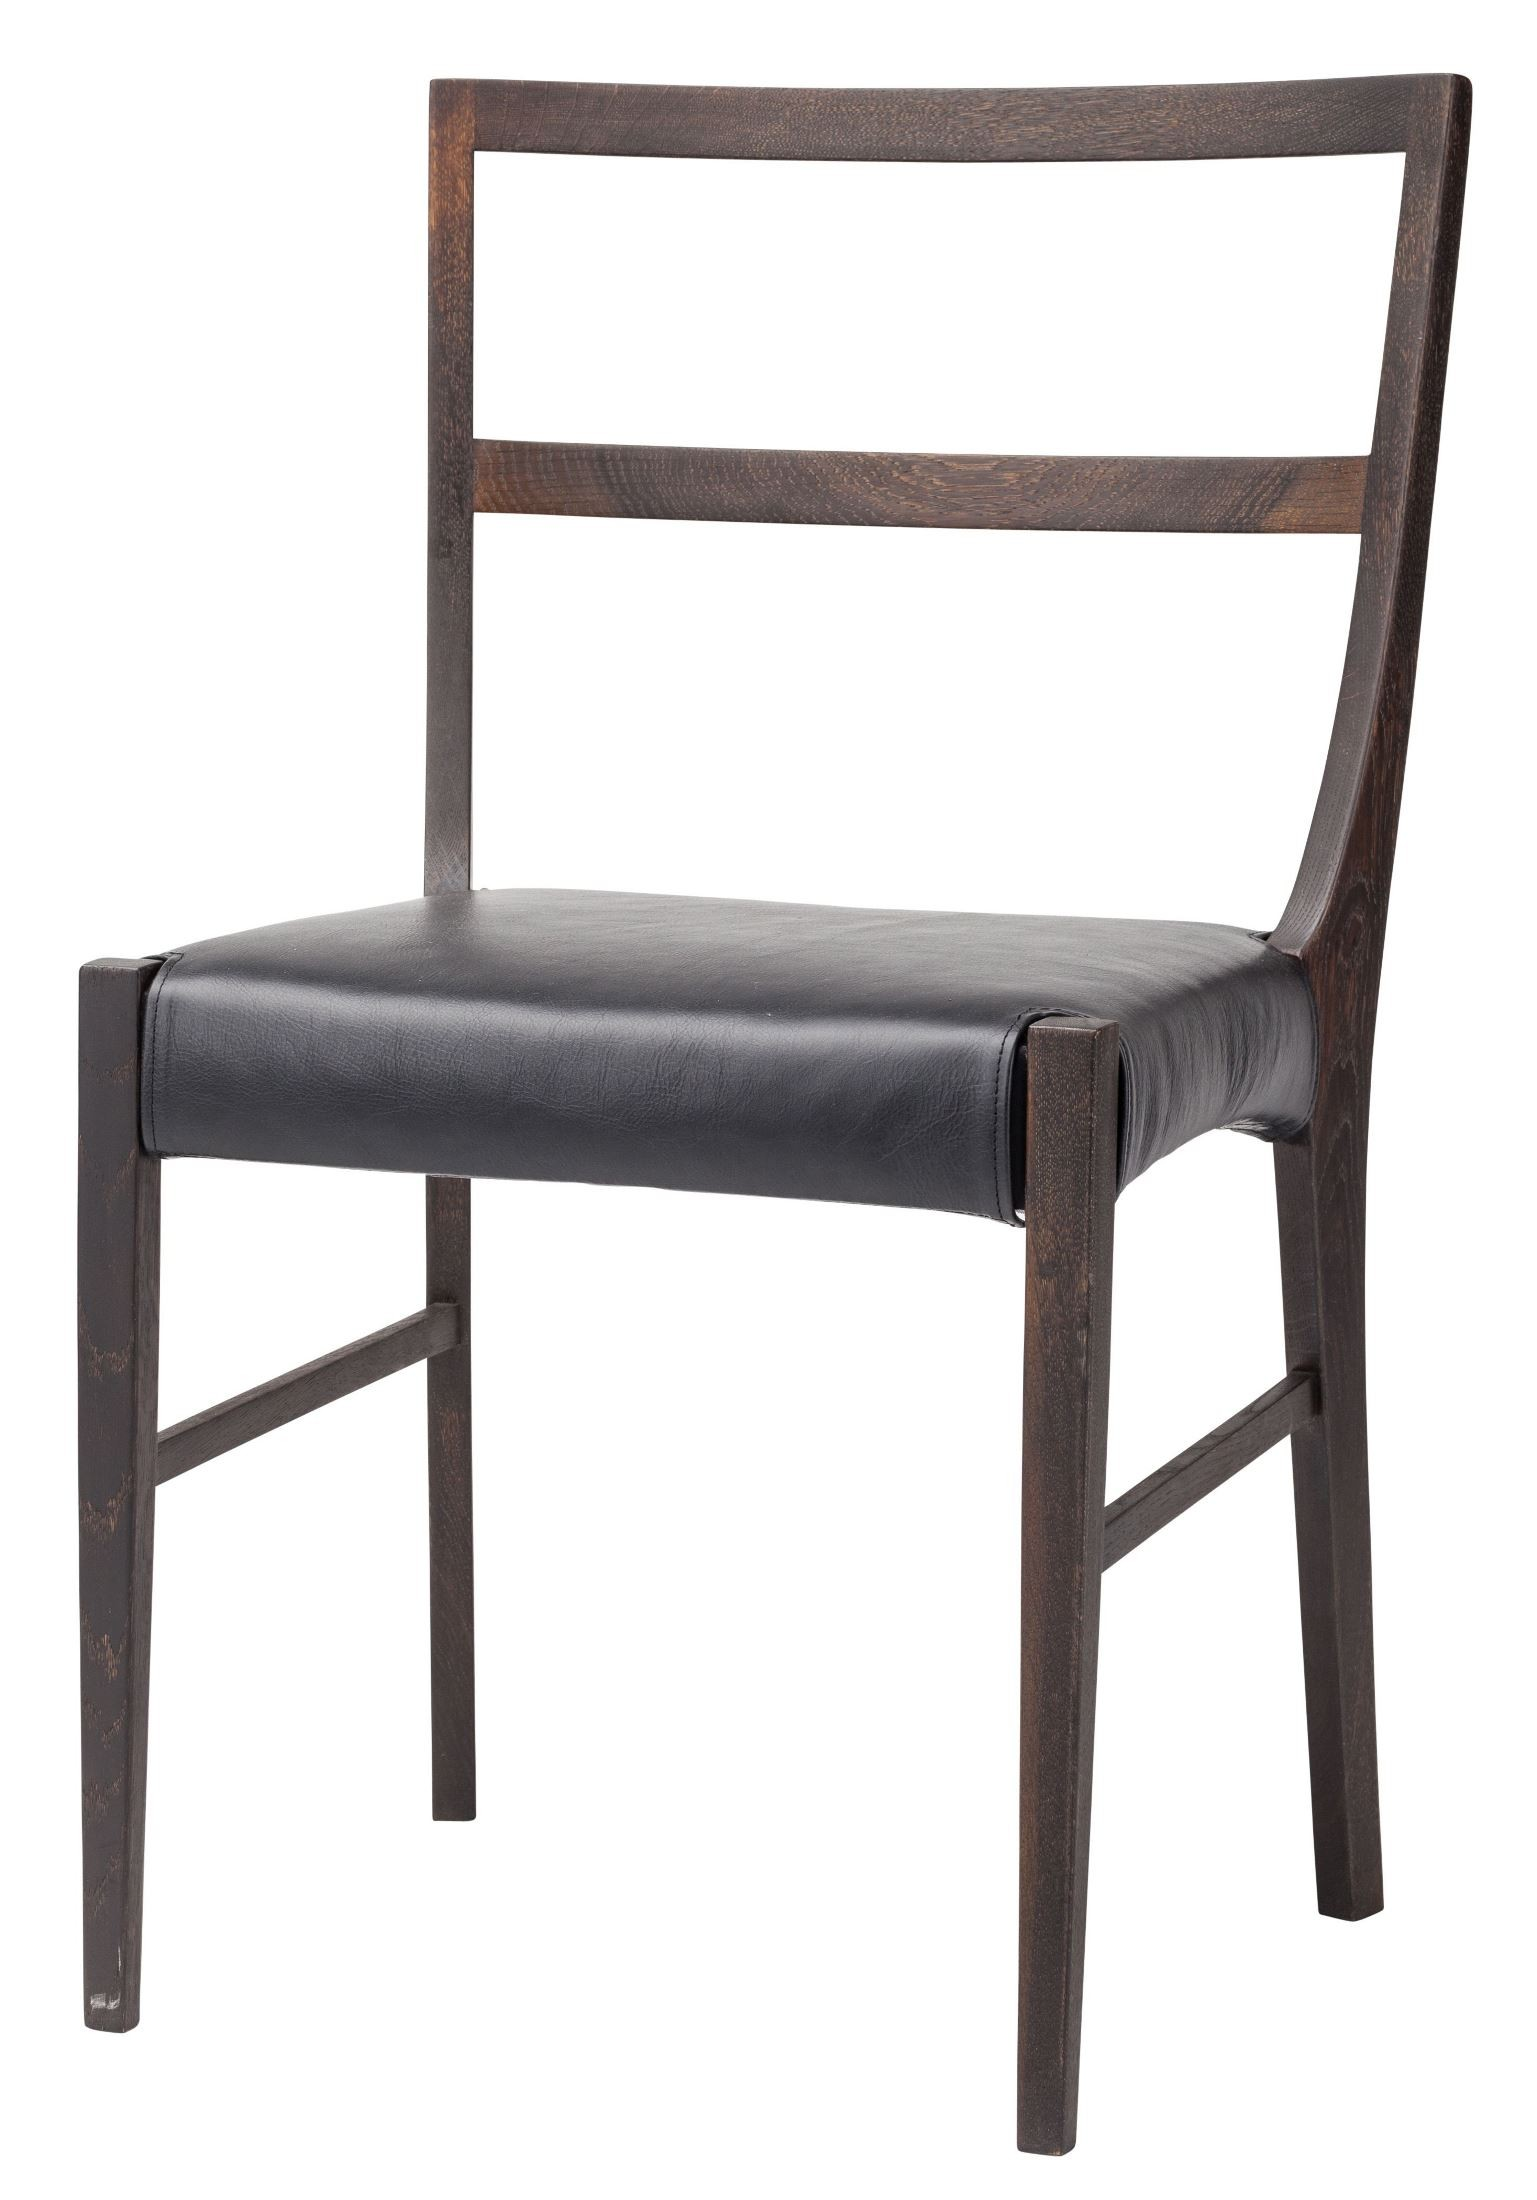 black leather chair dining first years high hanna from nuevo coleman